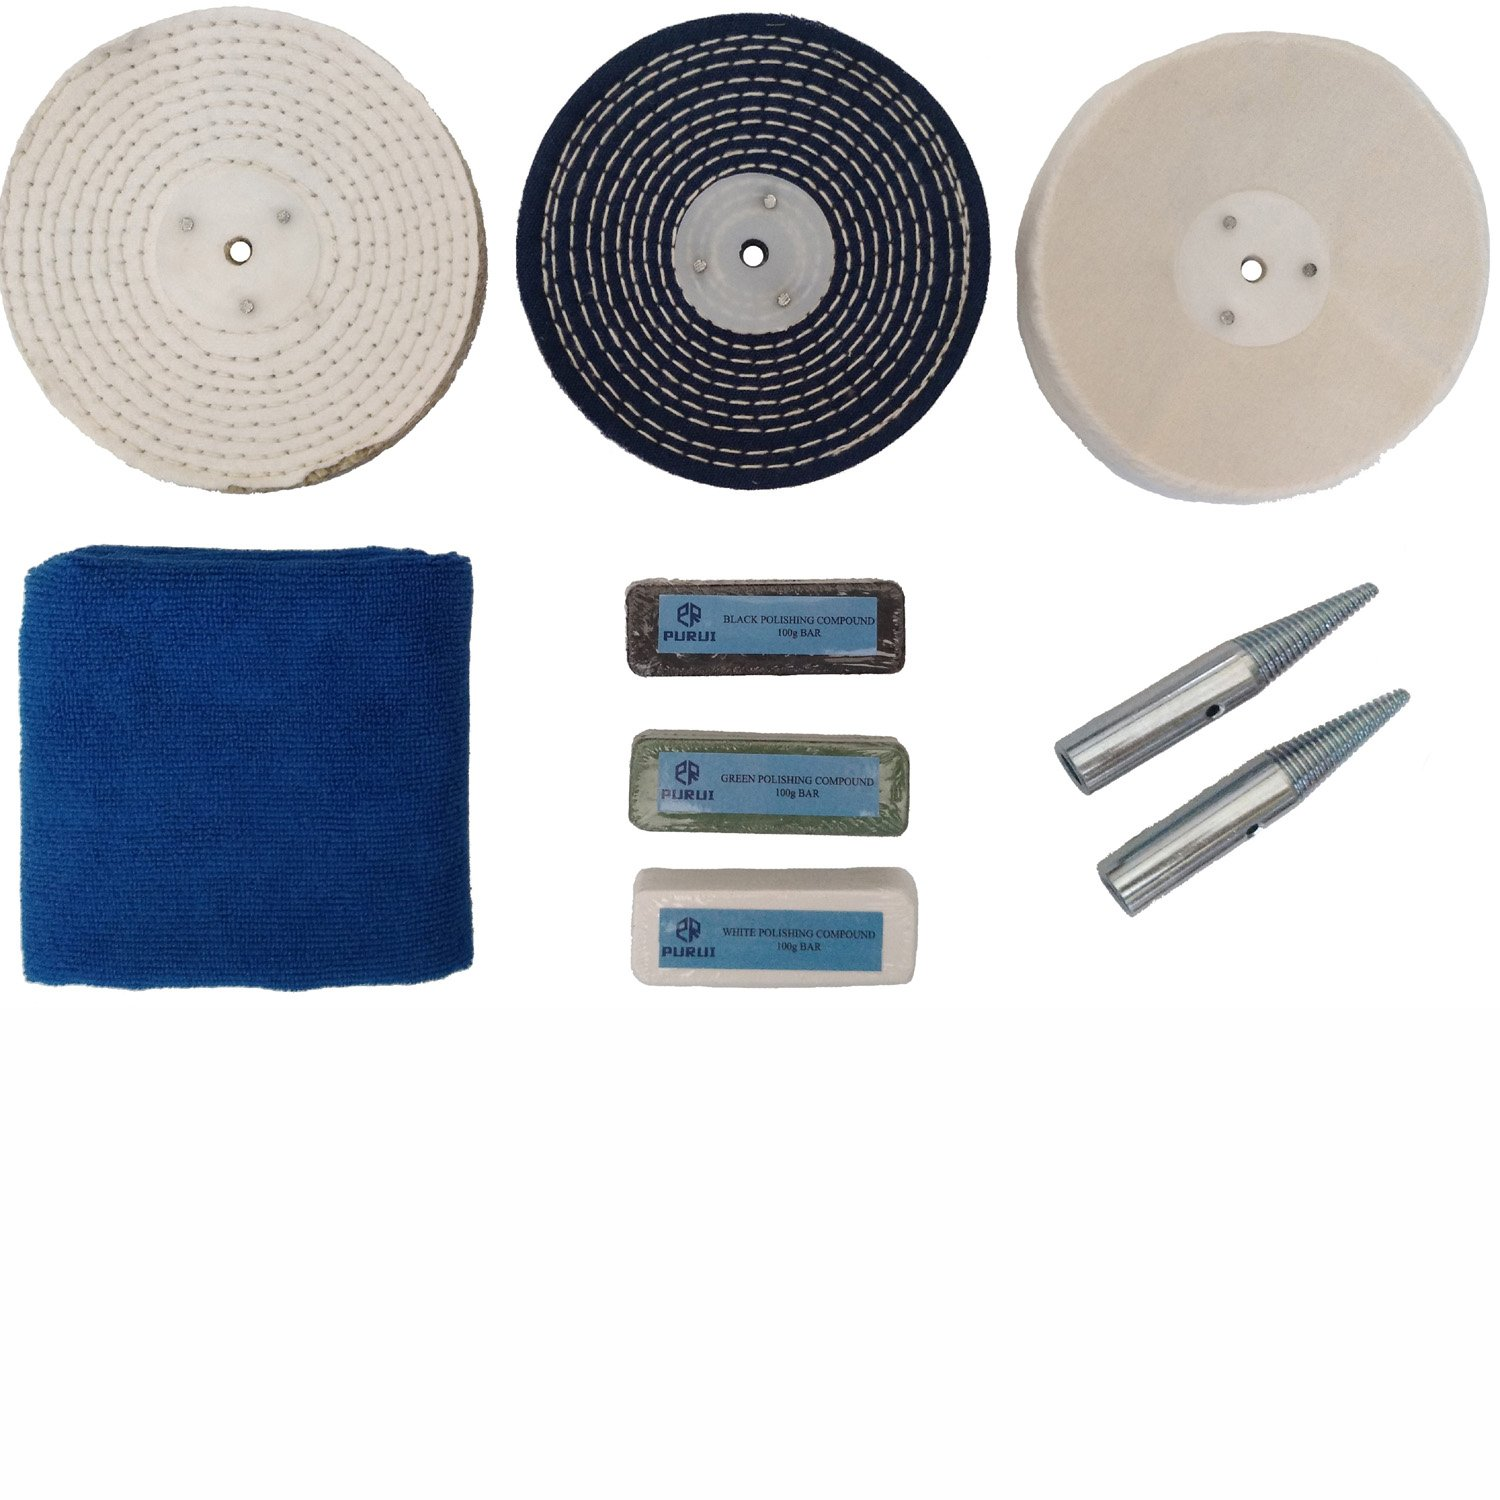 PURUI 6'' Stainless Steel Polishing Buffing Kit Use on Bench Grinder